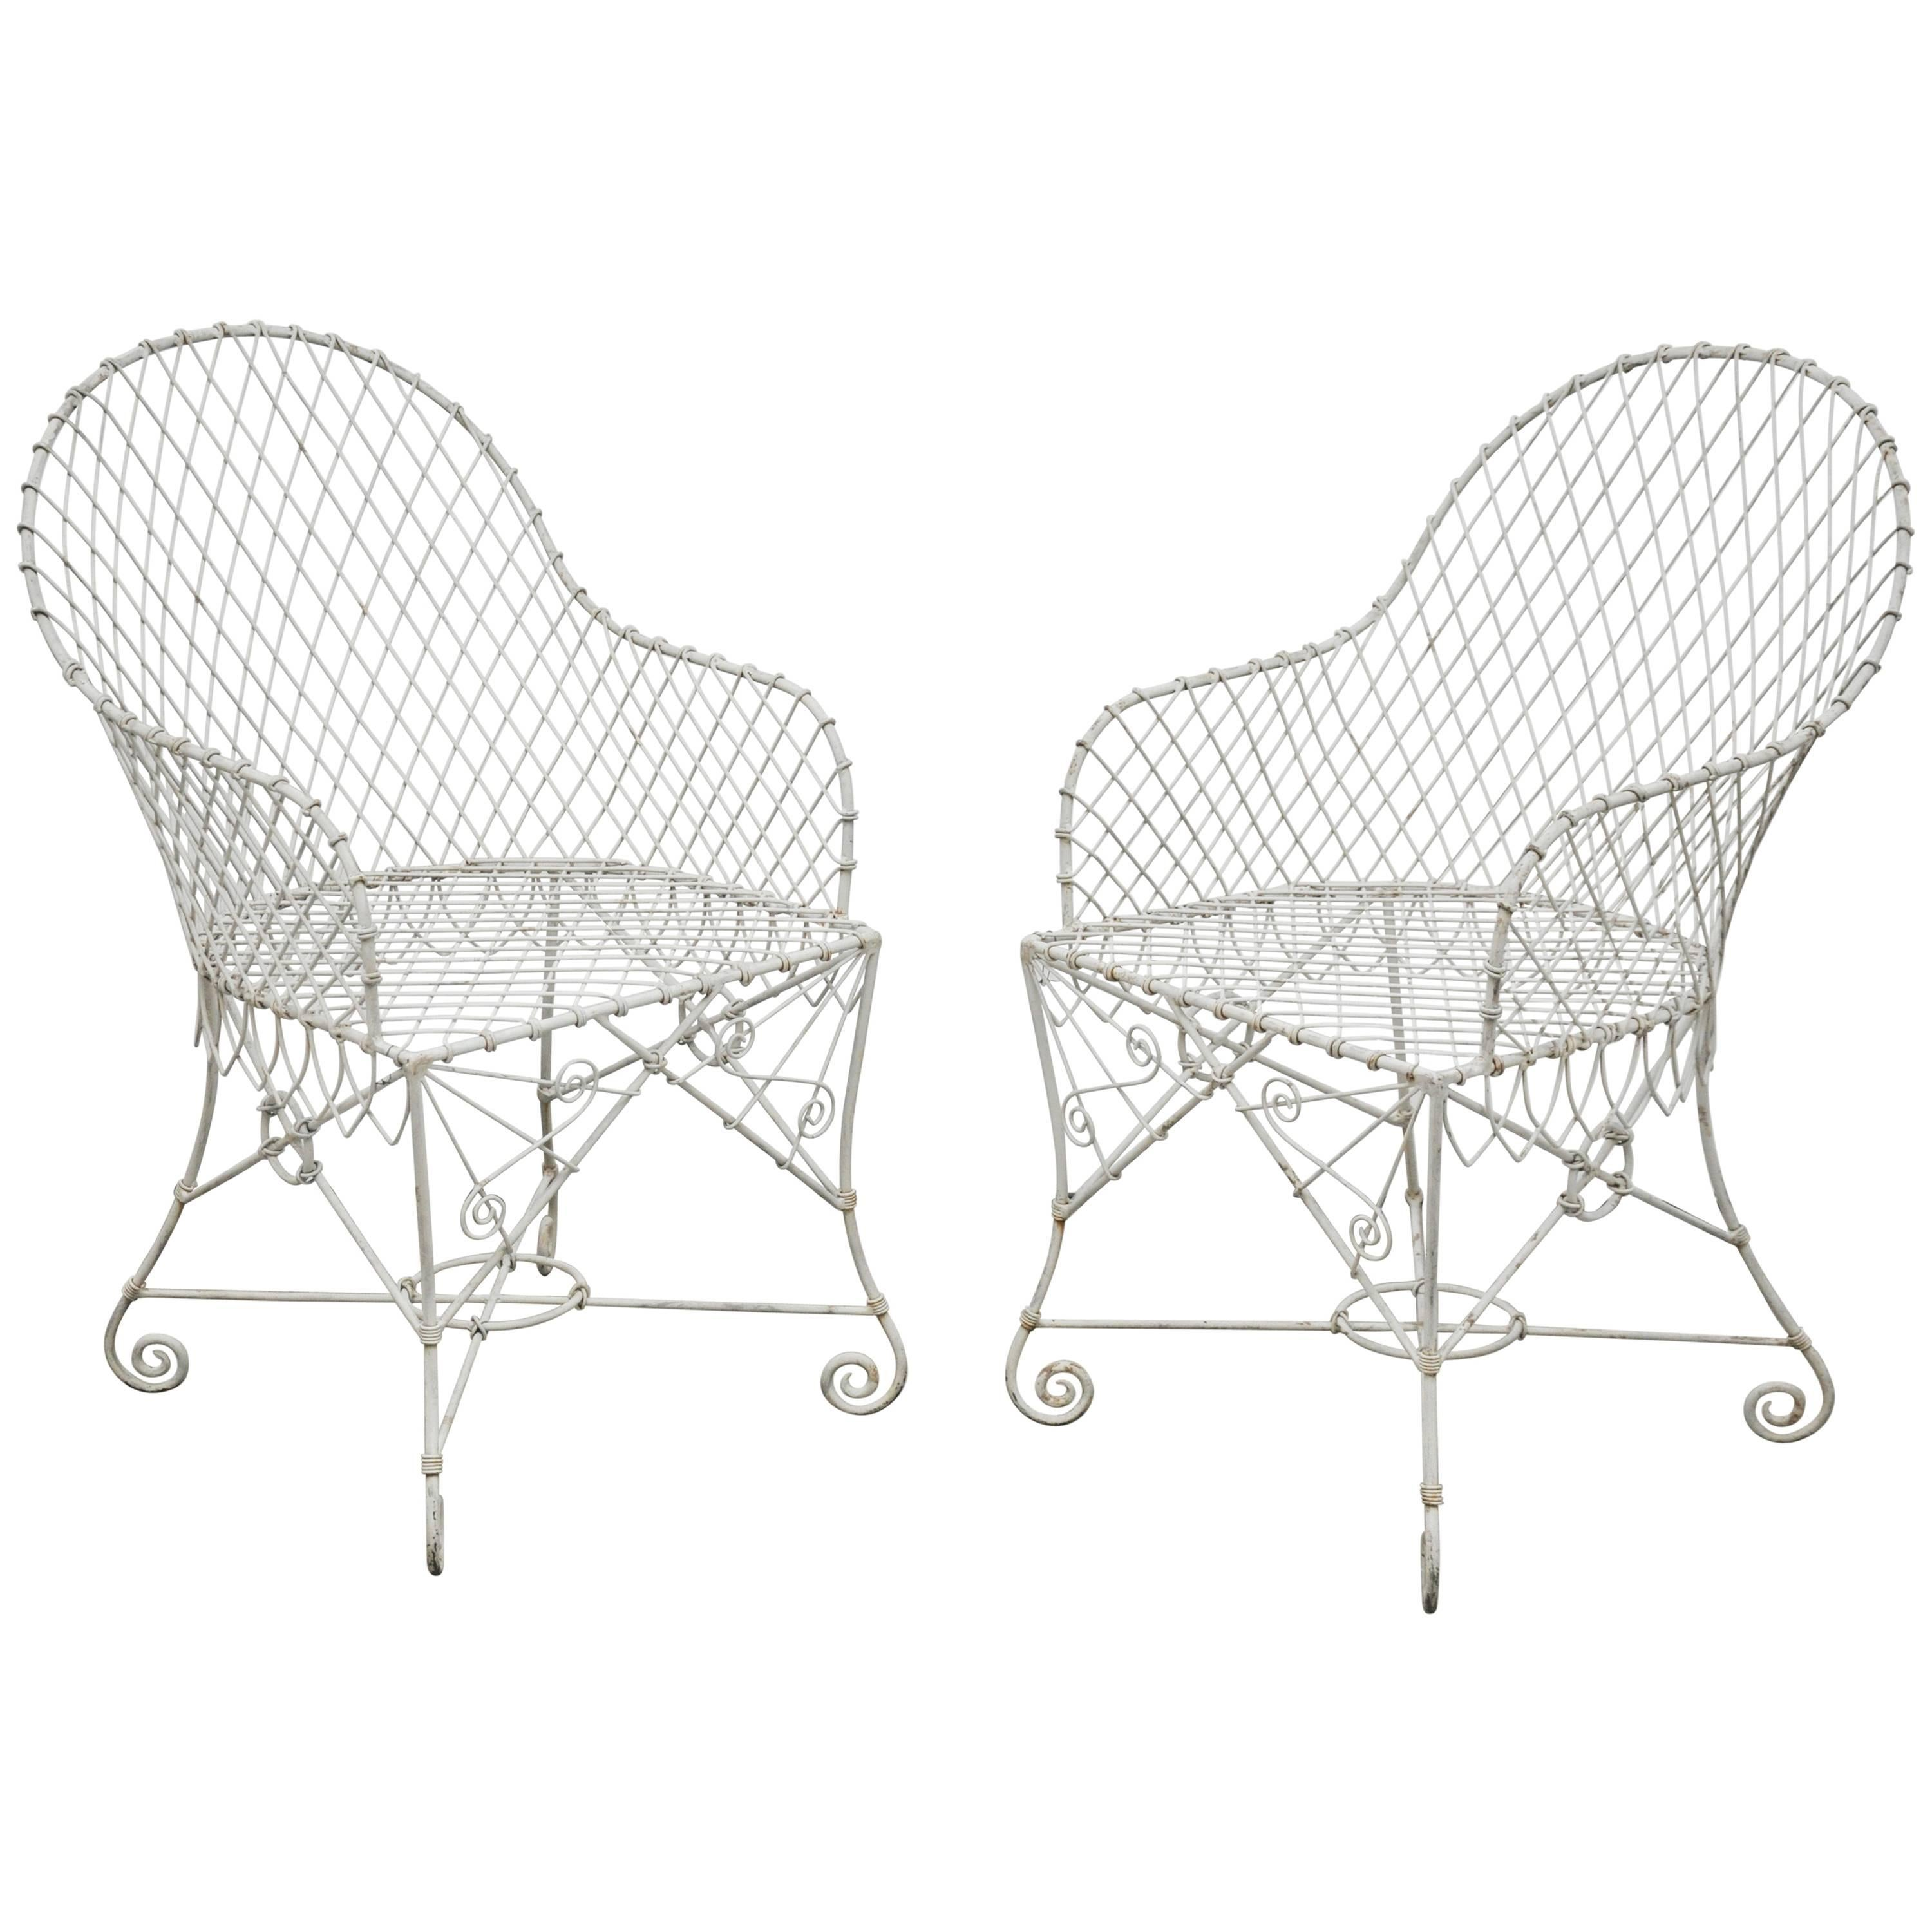 pair of wire chairs for sale at 1stdibs Art Deco Design Motifs